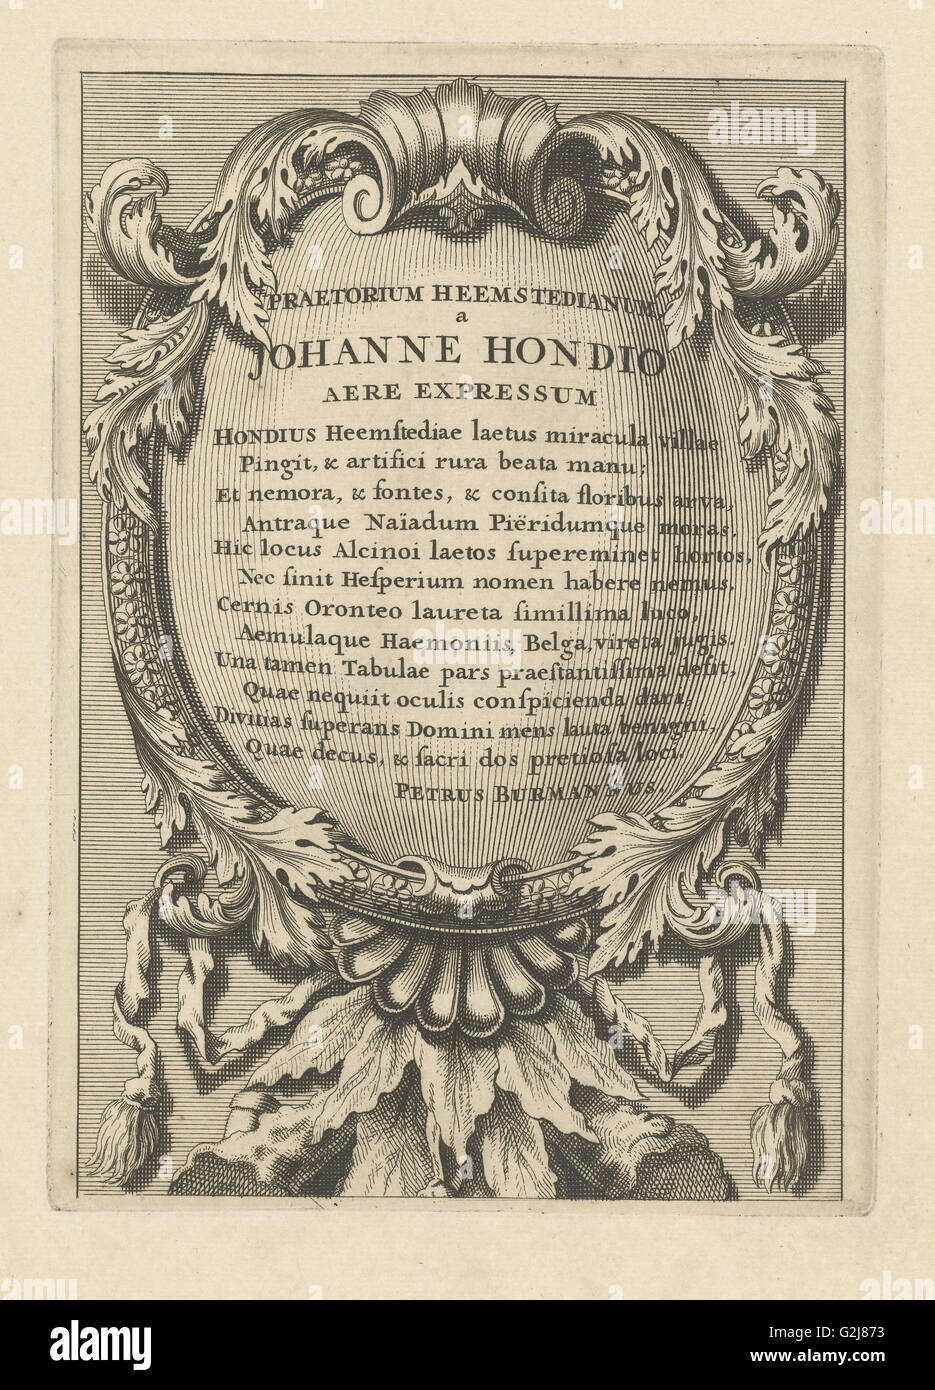 Cartouche with Latin text, Johannes Hondius, Pieter Burman, 1700 - 1799 - Stock Image